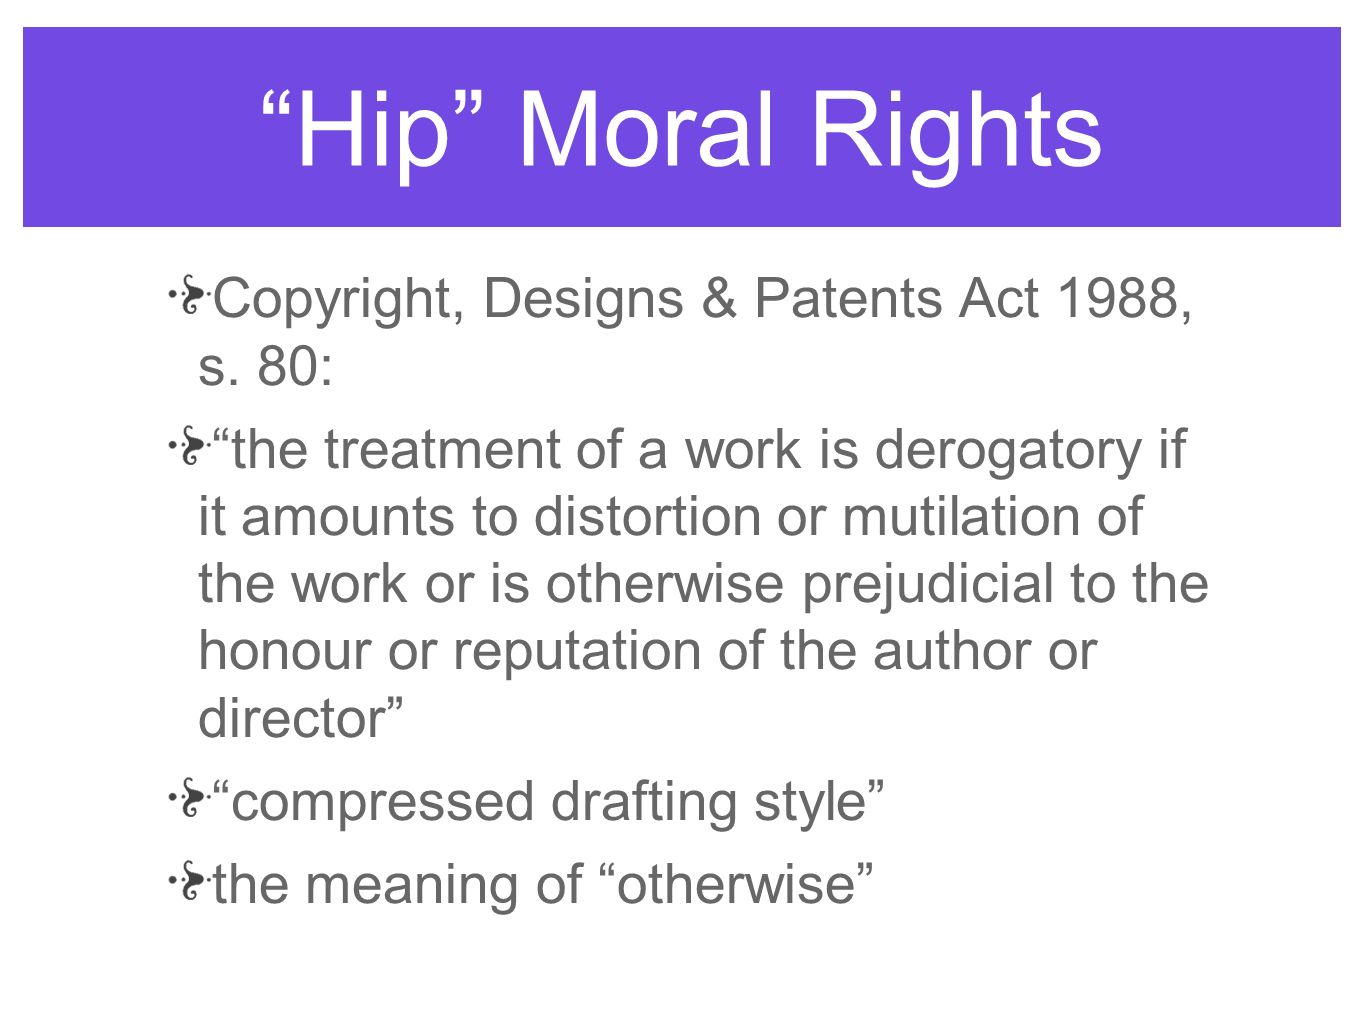 Hip Moral Rights Copyright, Designs & Patents Act 1988, s. 80: